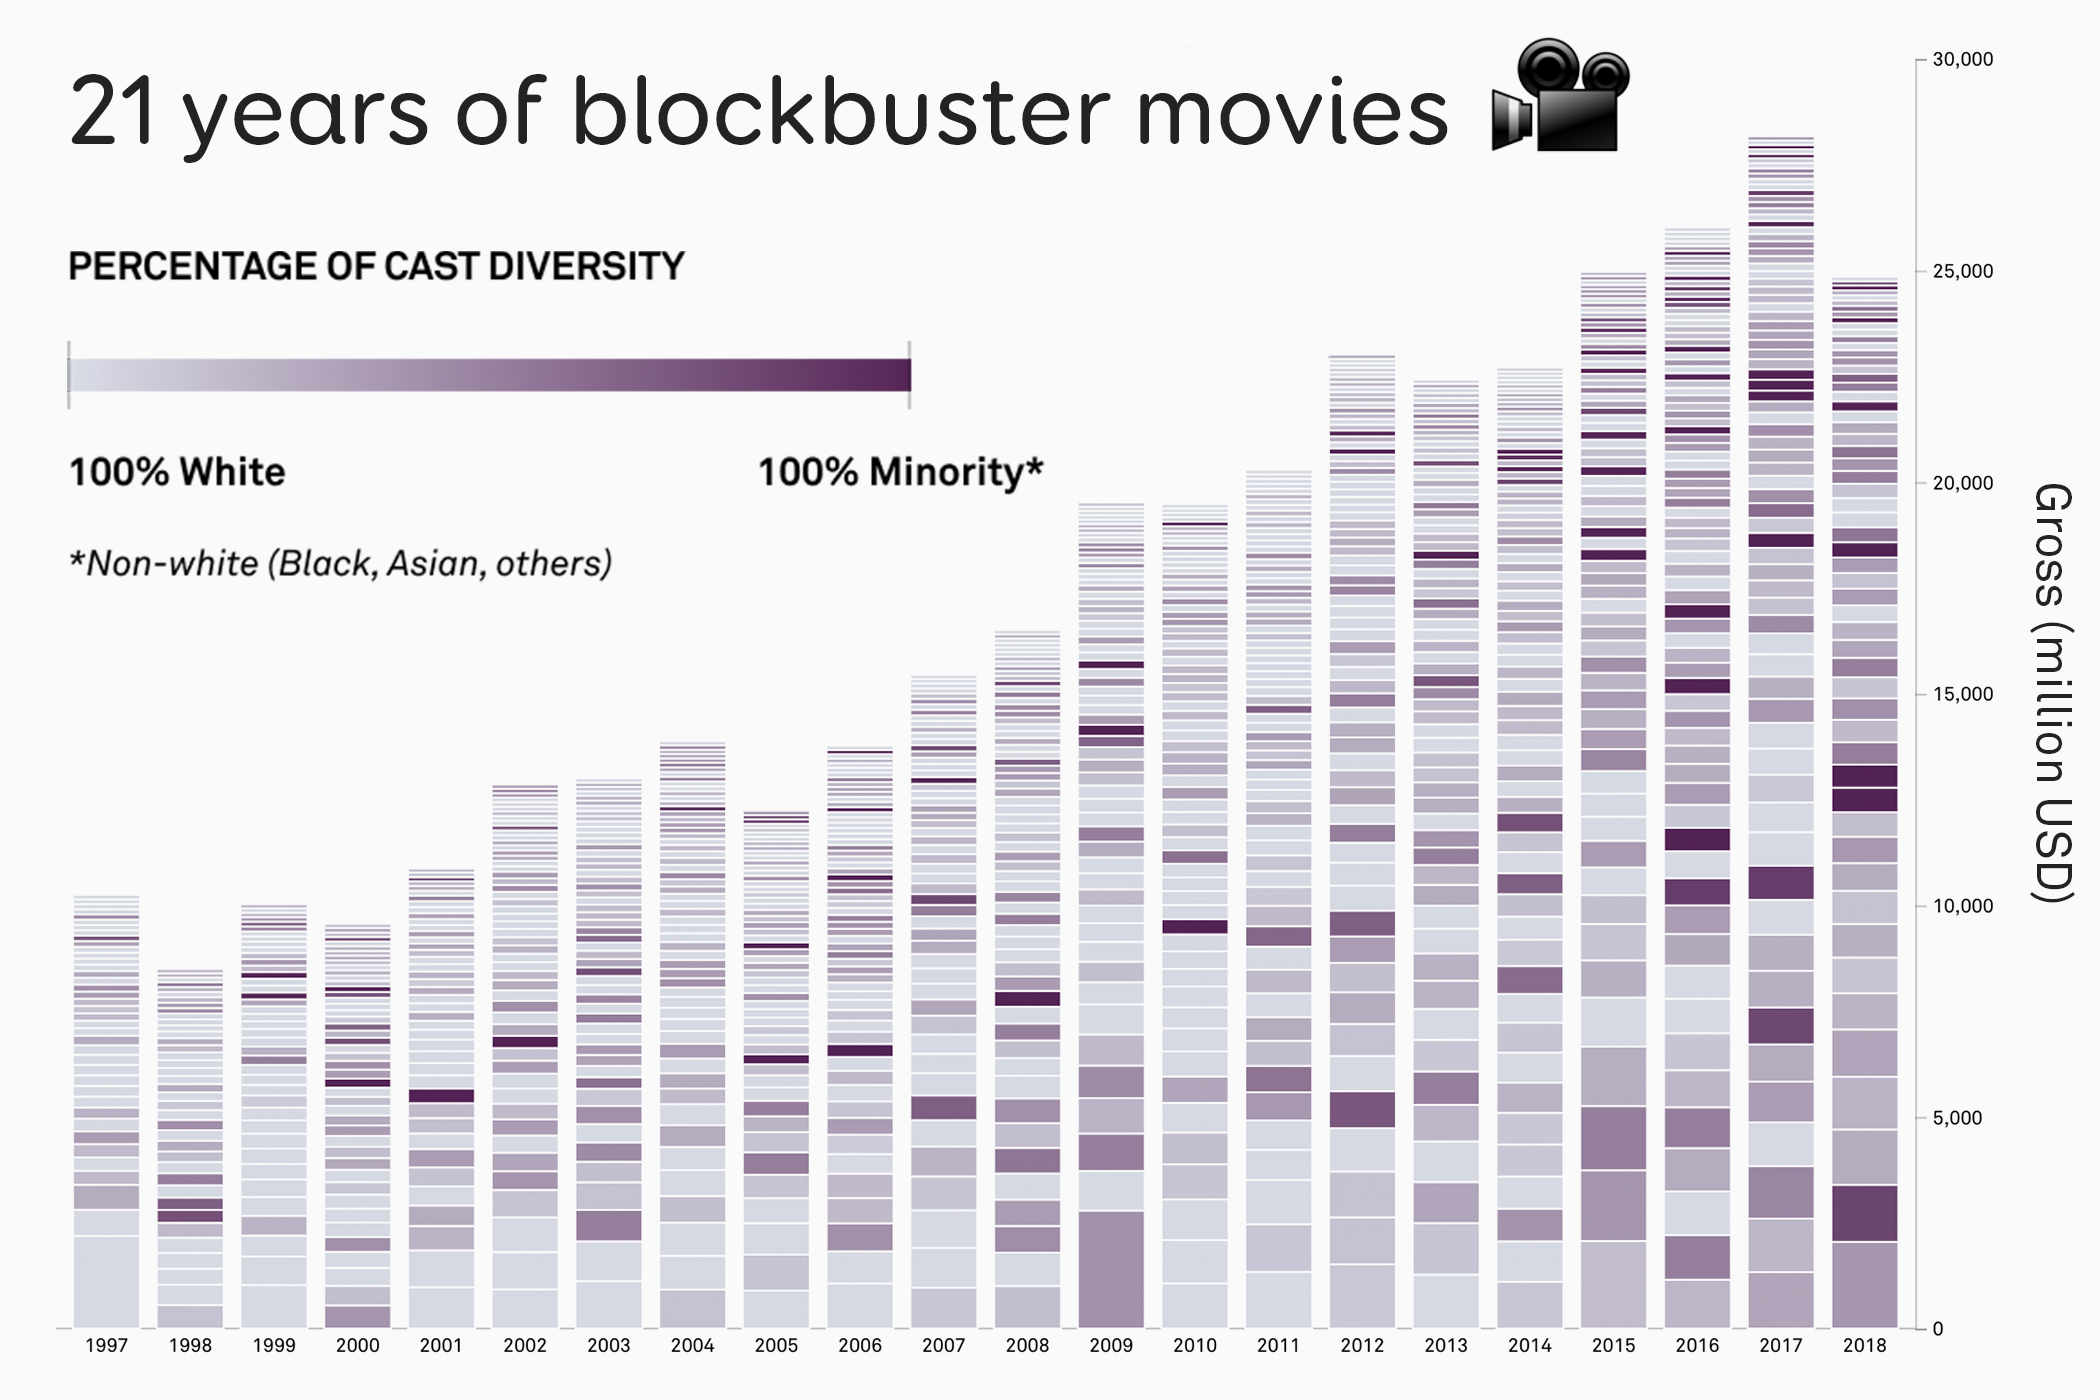 A data visualisation showing the percentage of cast diversity in blockbuster movies from 1998 to 2019.